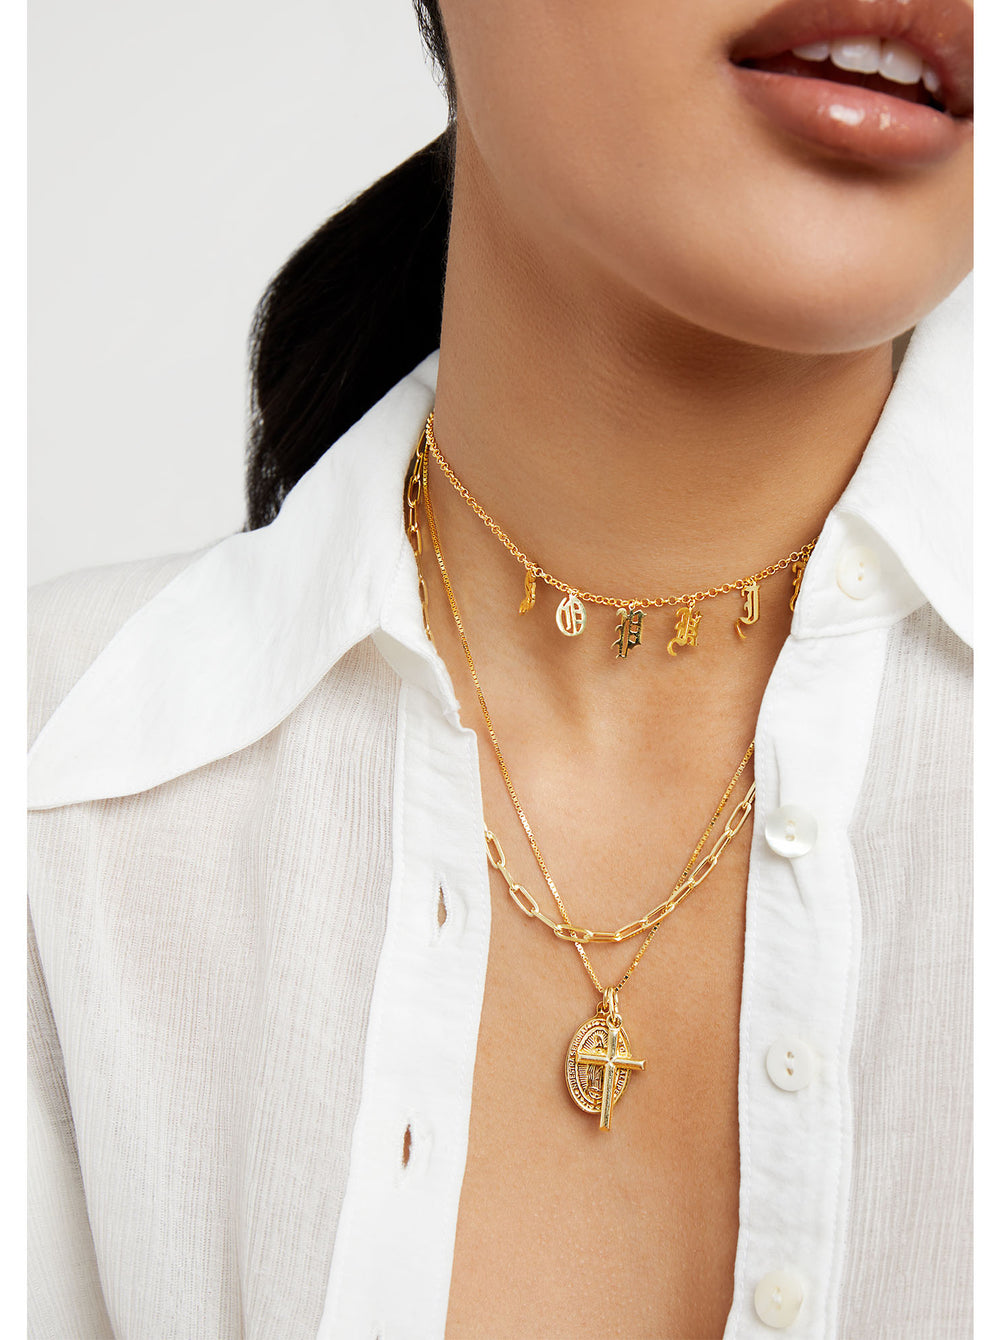 THE LAYERING REDA LINK CHAIN